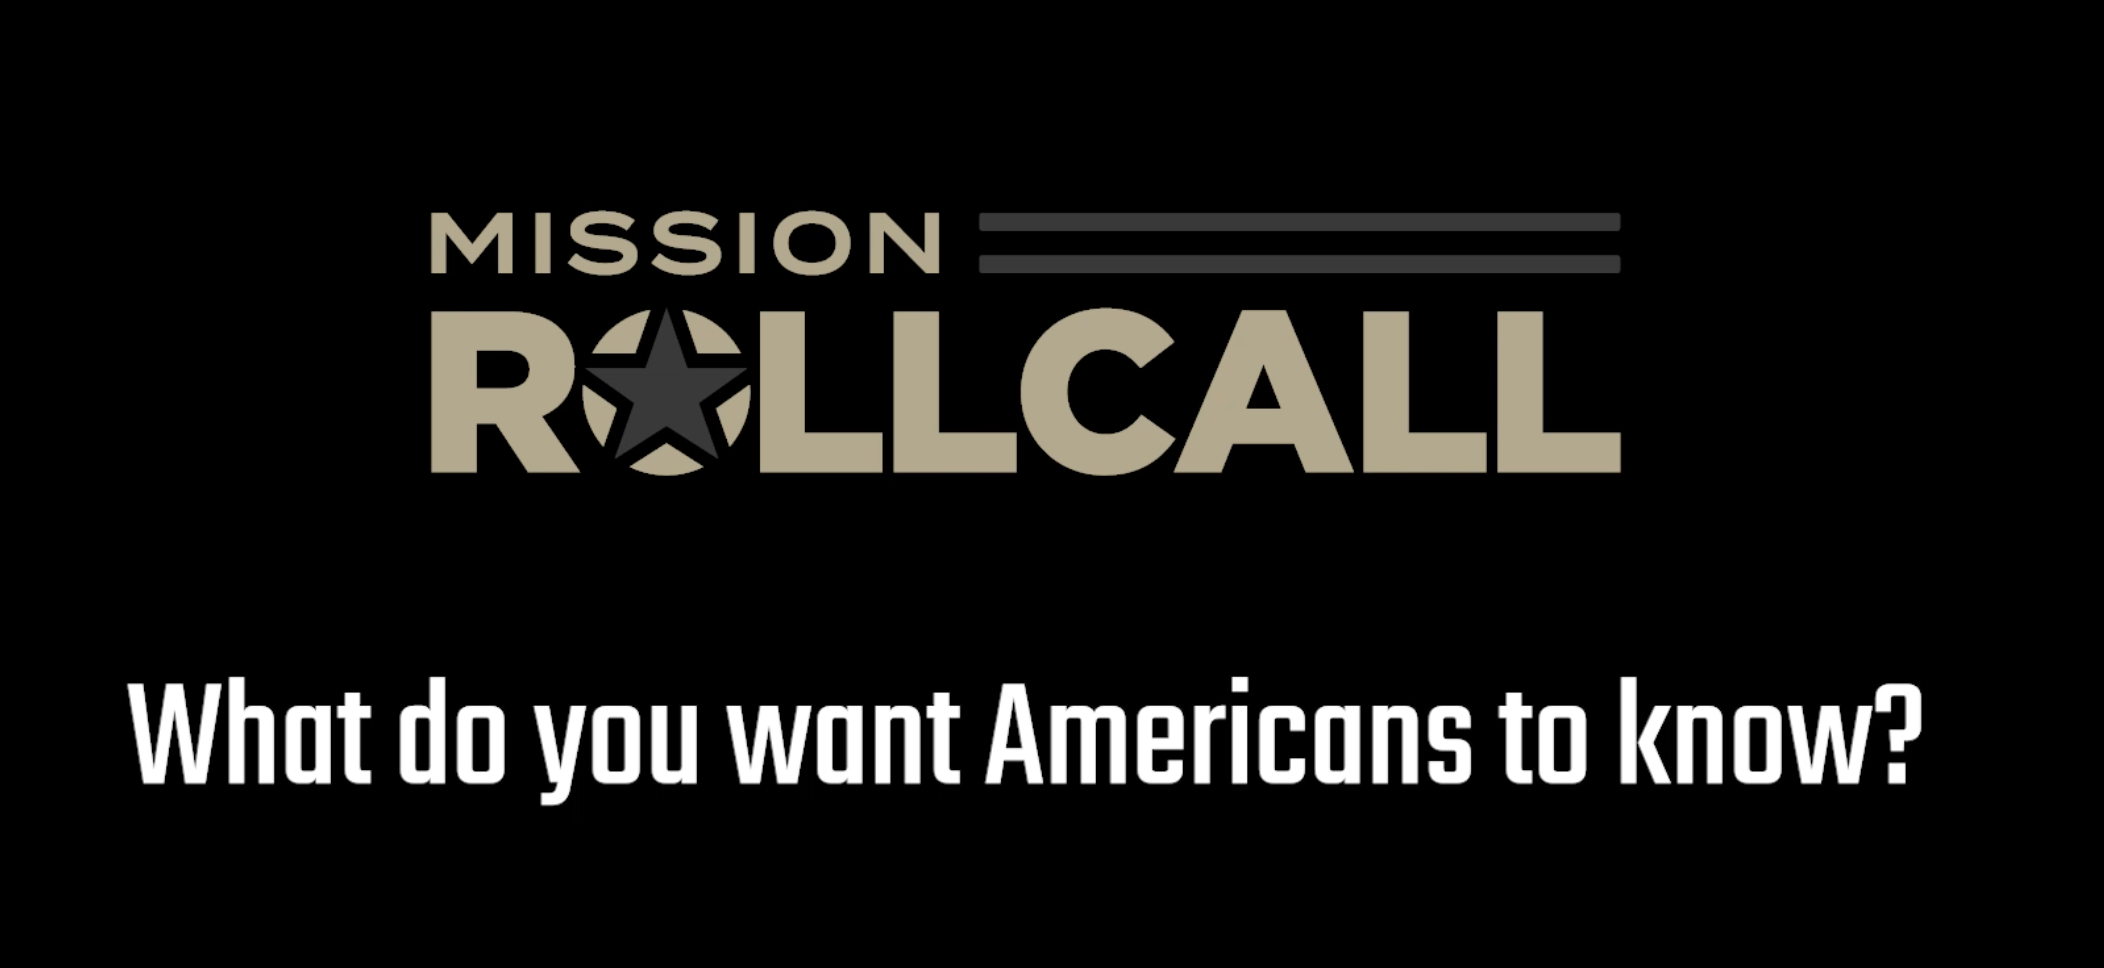 America's Warrior Partnership invites Veterans, their families and caregivers to join Mission Roll Call, a digital community built for Veterans.